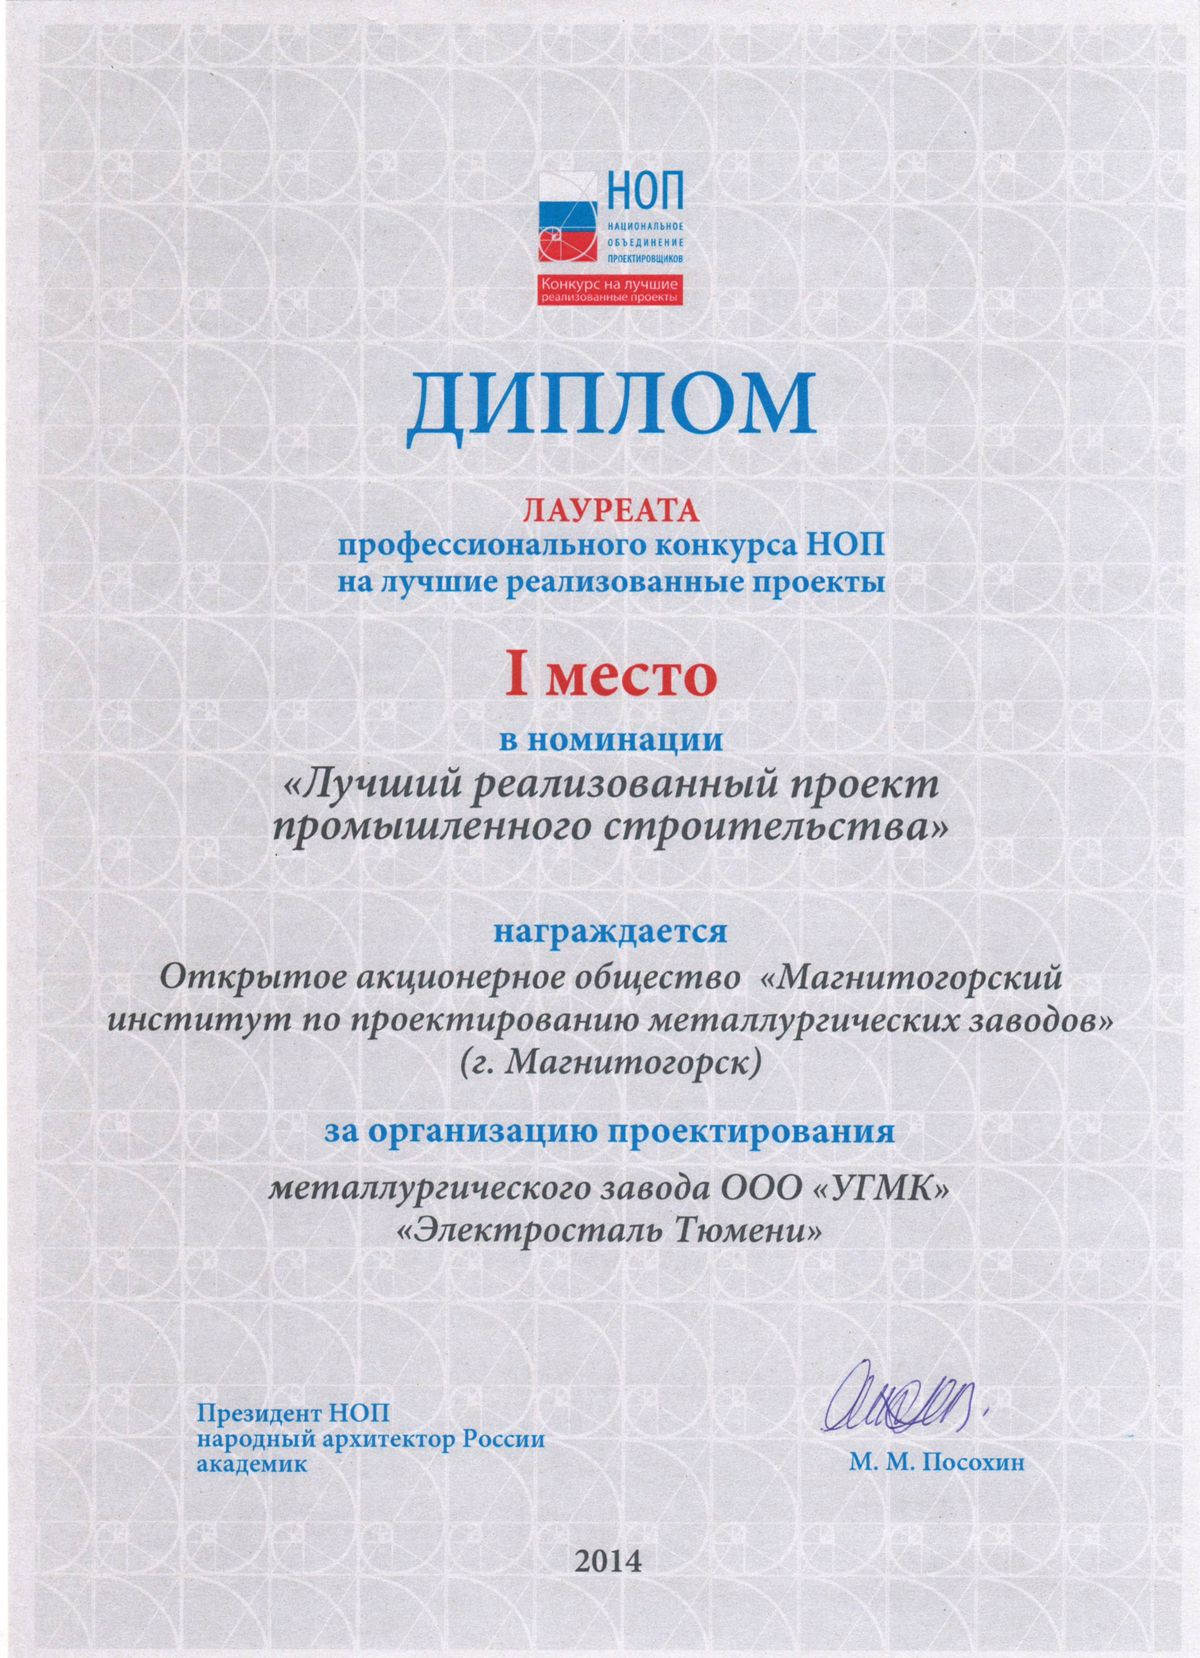 menulevel2_copy_of_SAIT_2013-DIPLOM NOP za LPC11.jpg